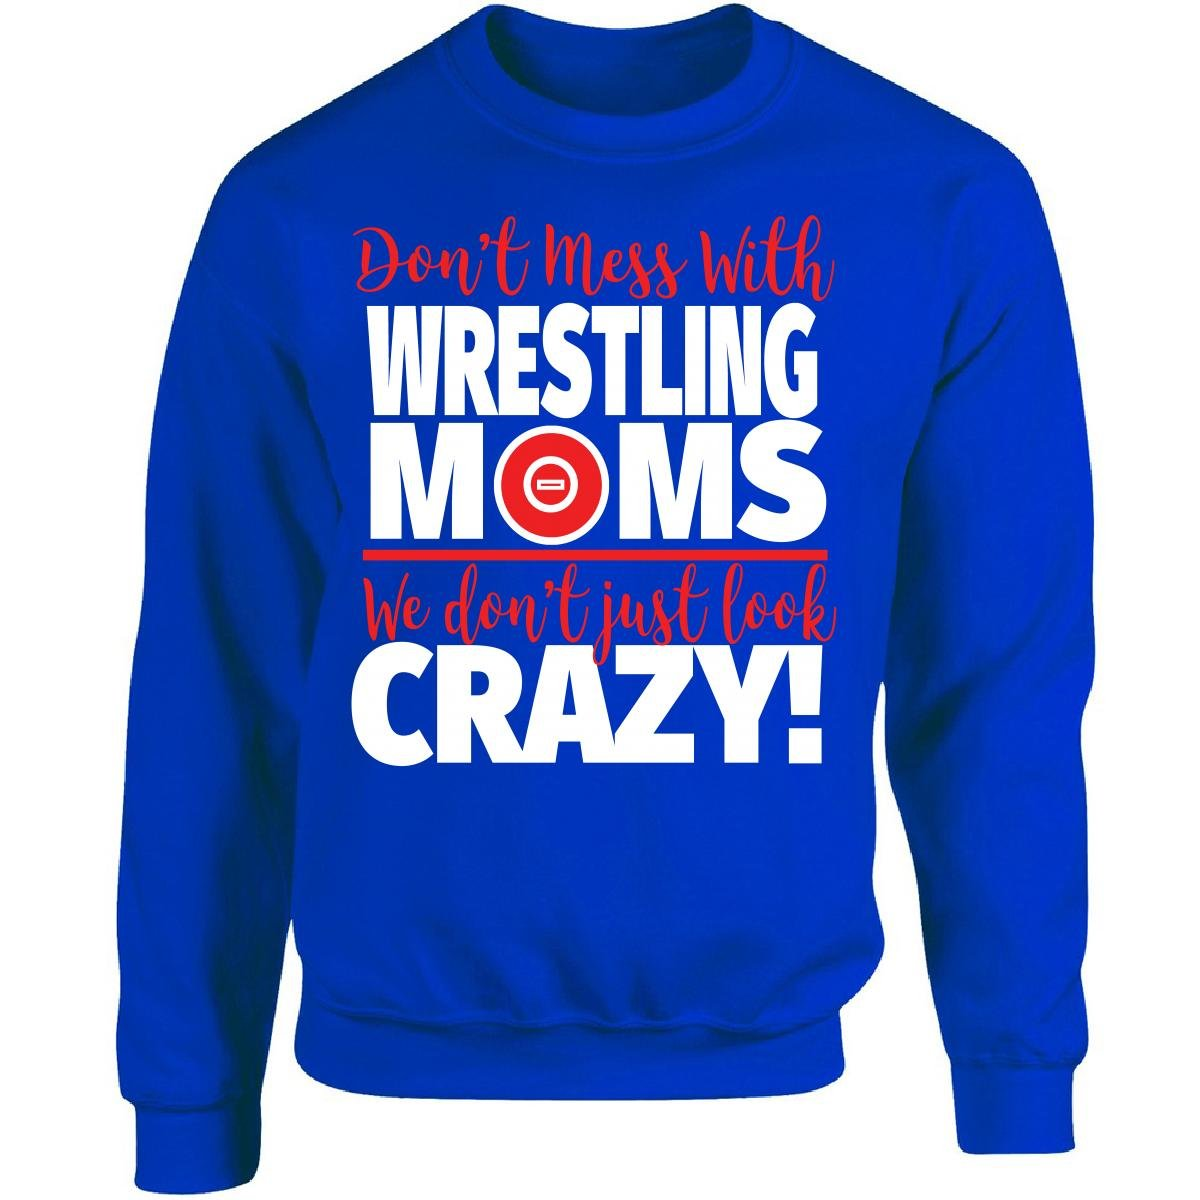 Crazy Wrestling Family - Don't Mess With Wrestling Moms - Adult Sweatshirt by Eternally Gifted